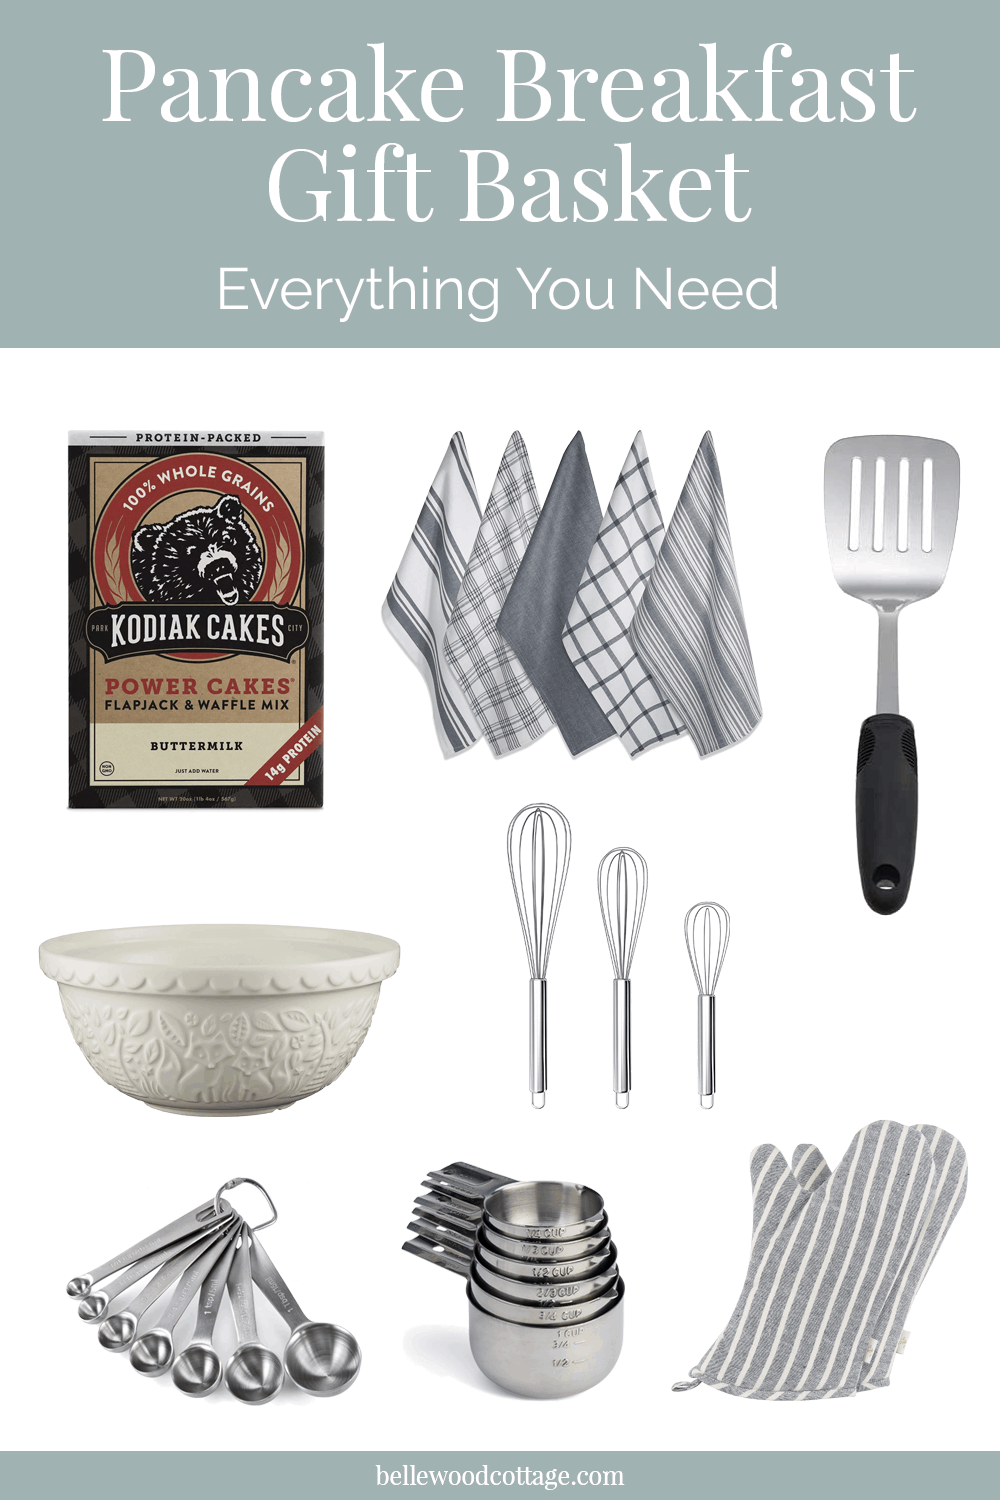 A selection of products needed to create a pancake breakfast gift basket.